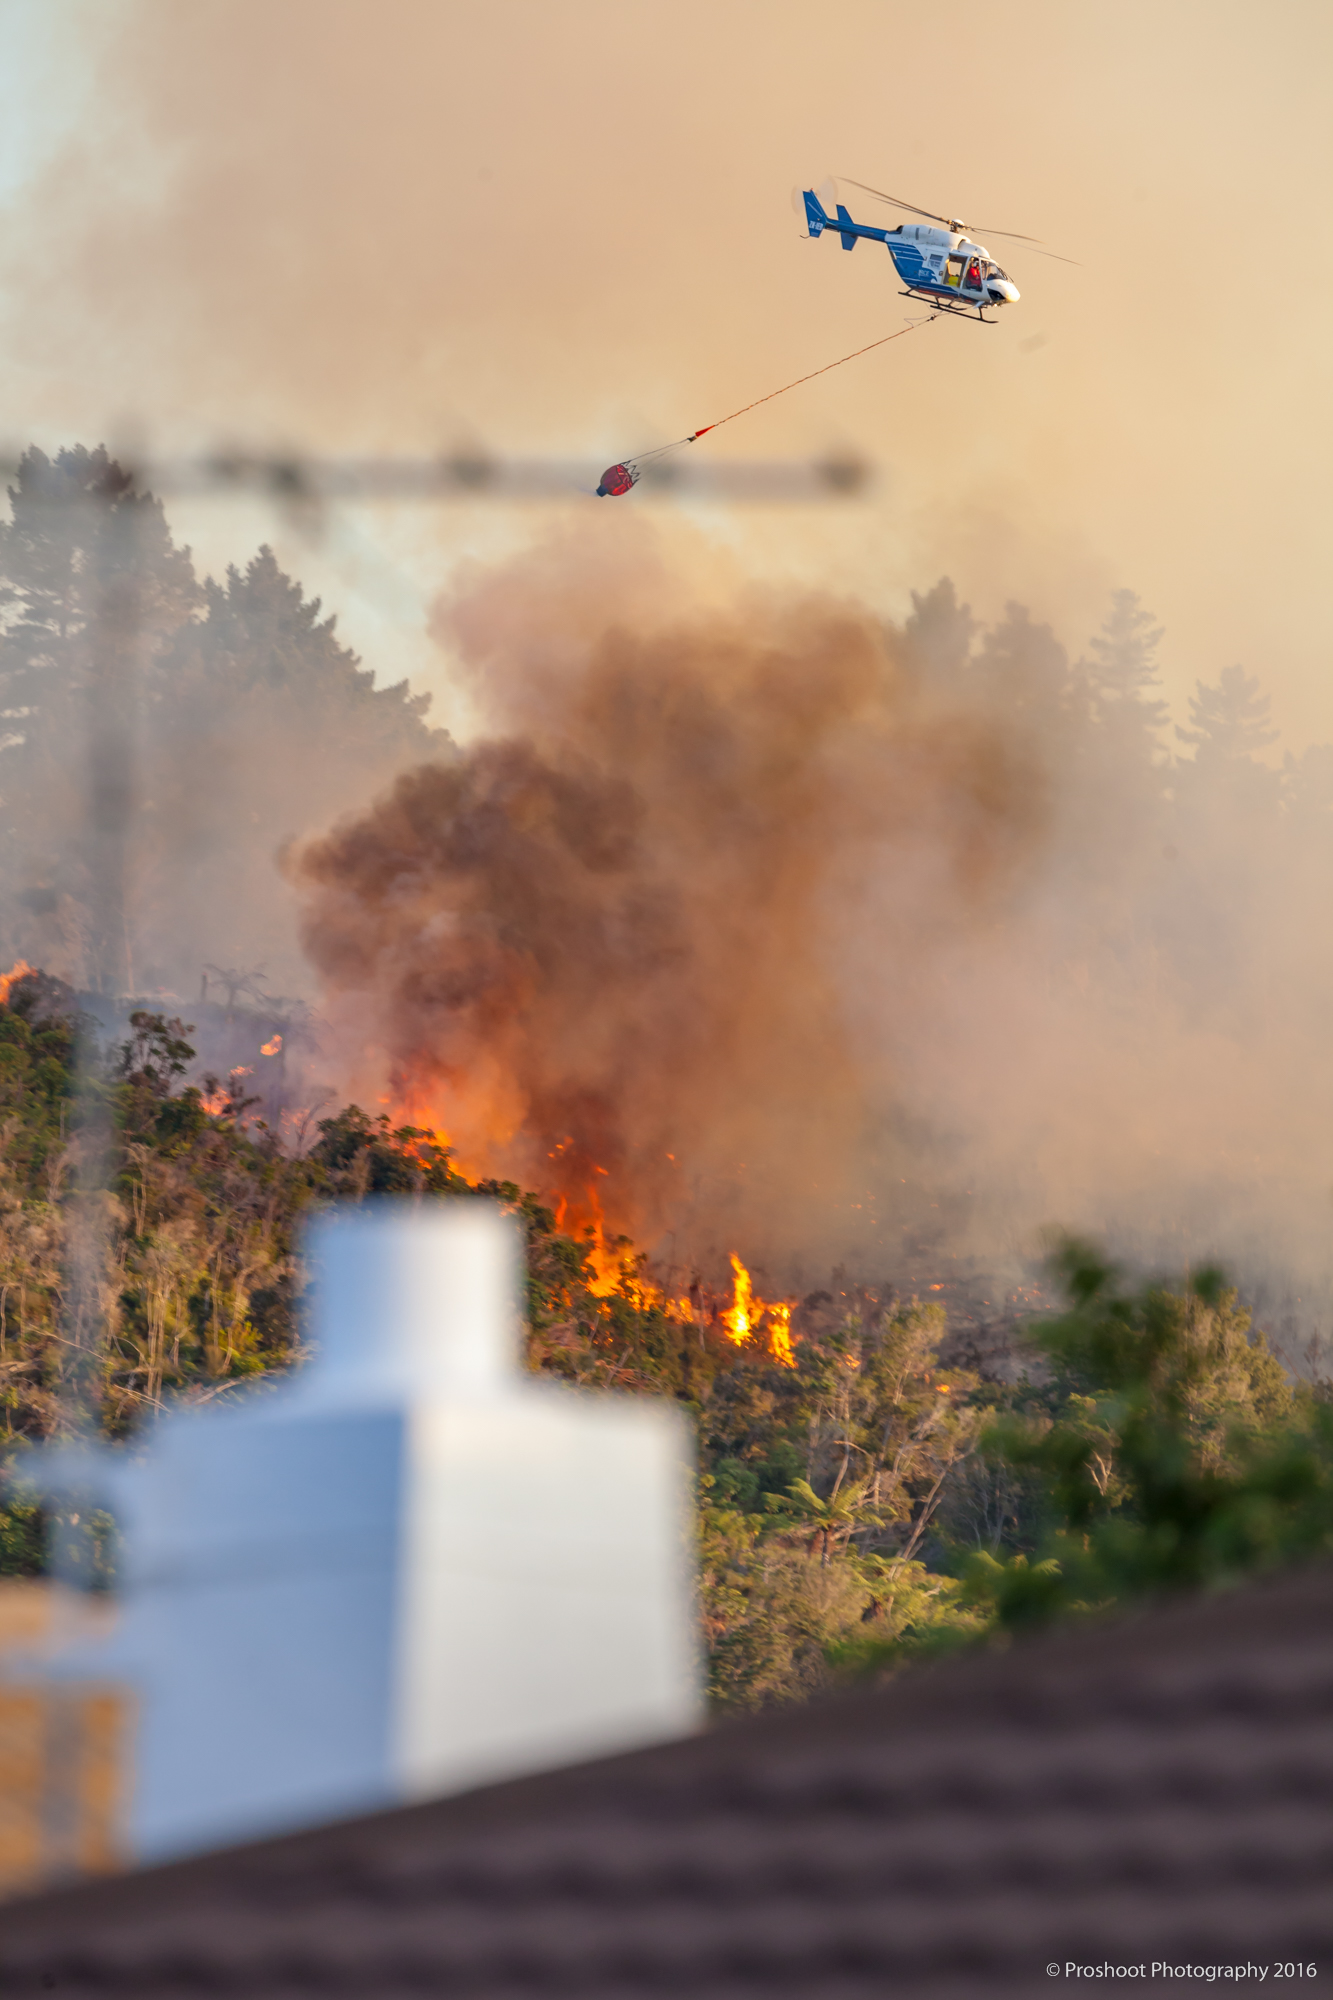 Upper Hutt Scrub Fire Images 5647